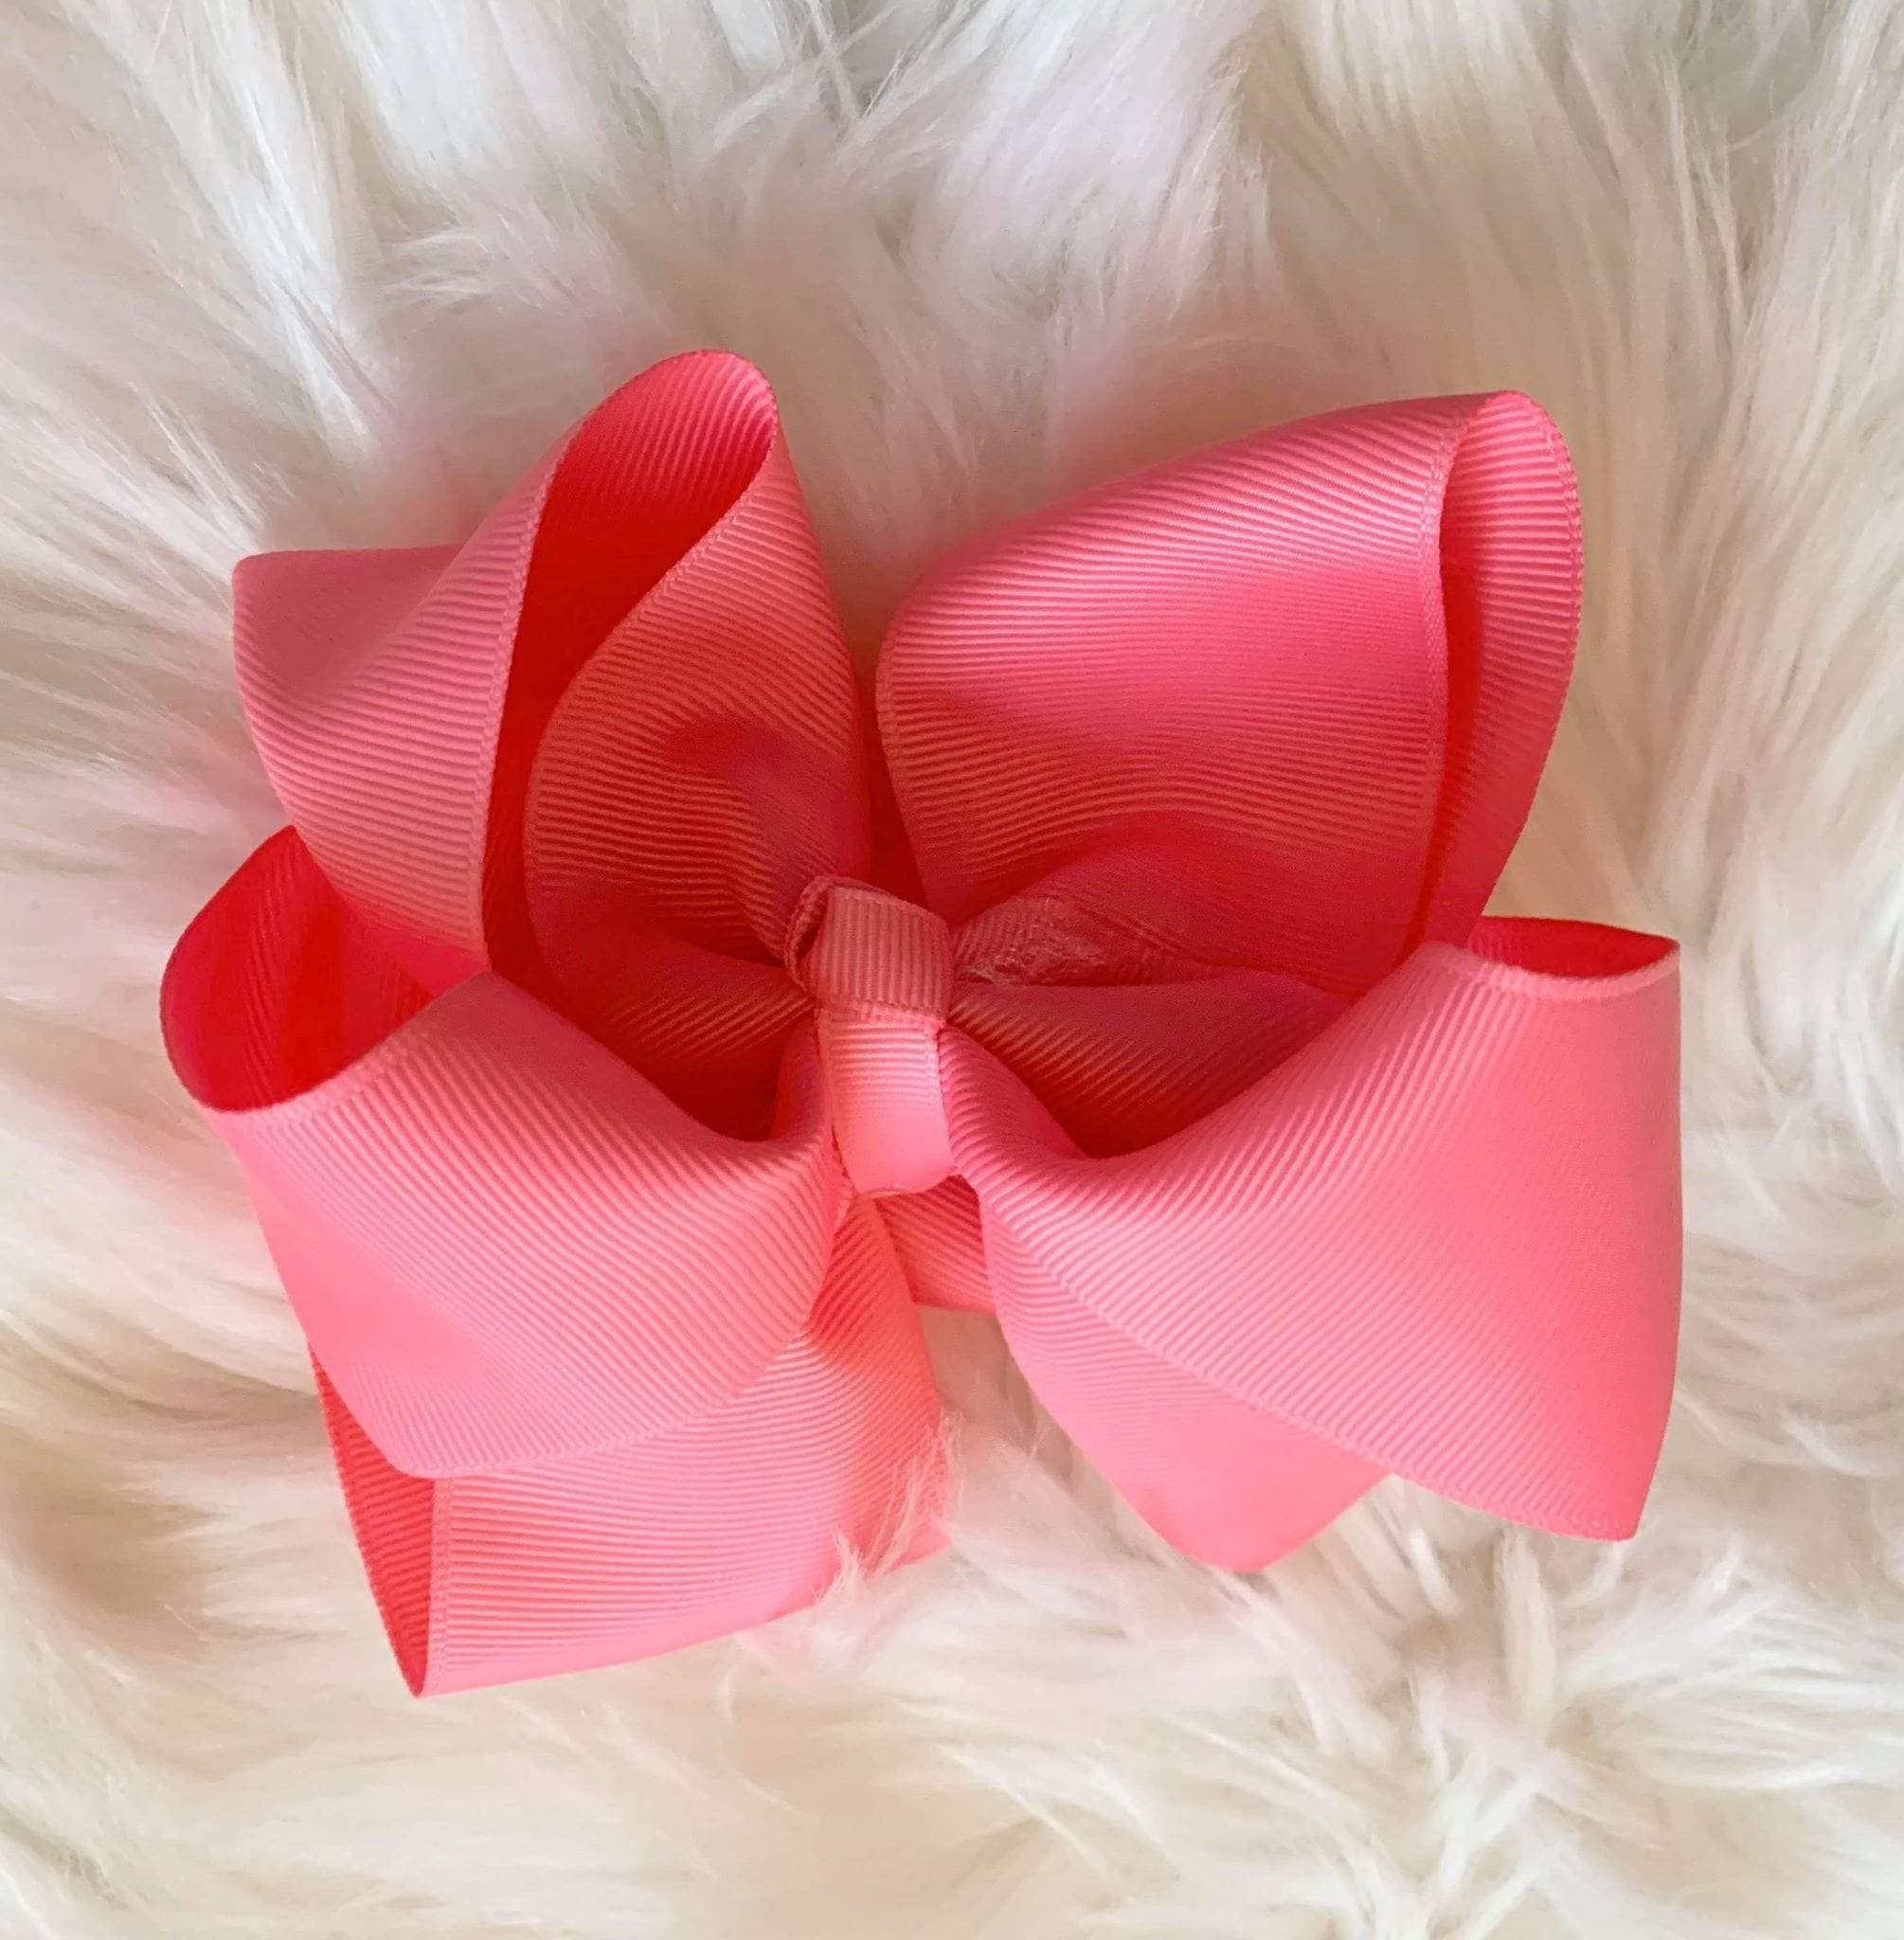 Mariposa Children's Boutique Hairbow Hairbow Hot Pink 6""